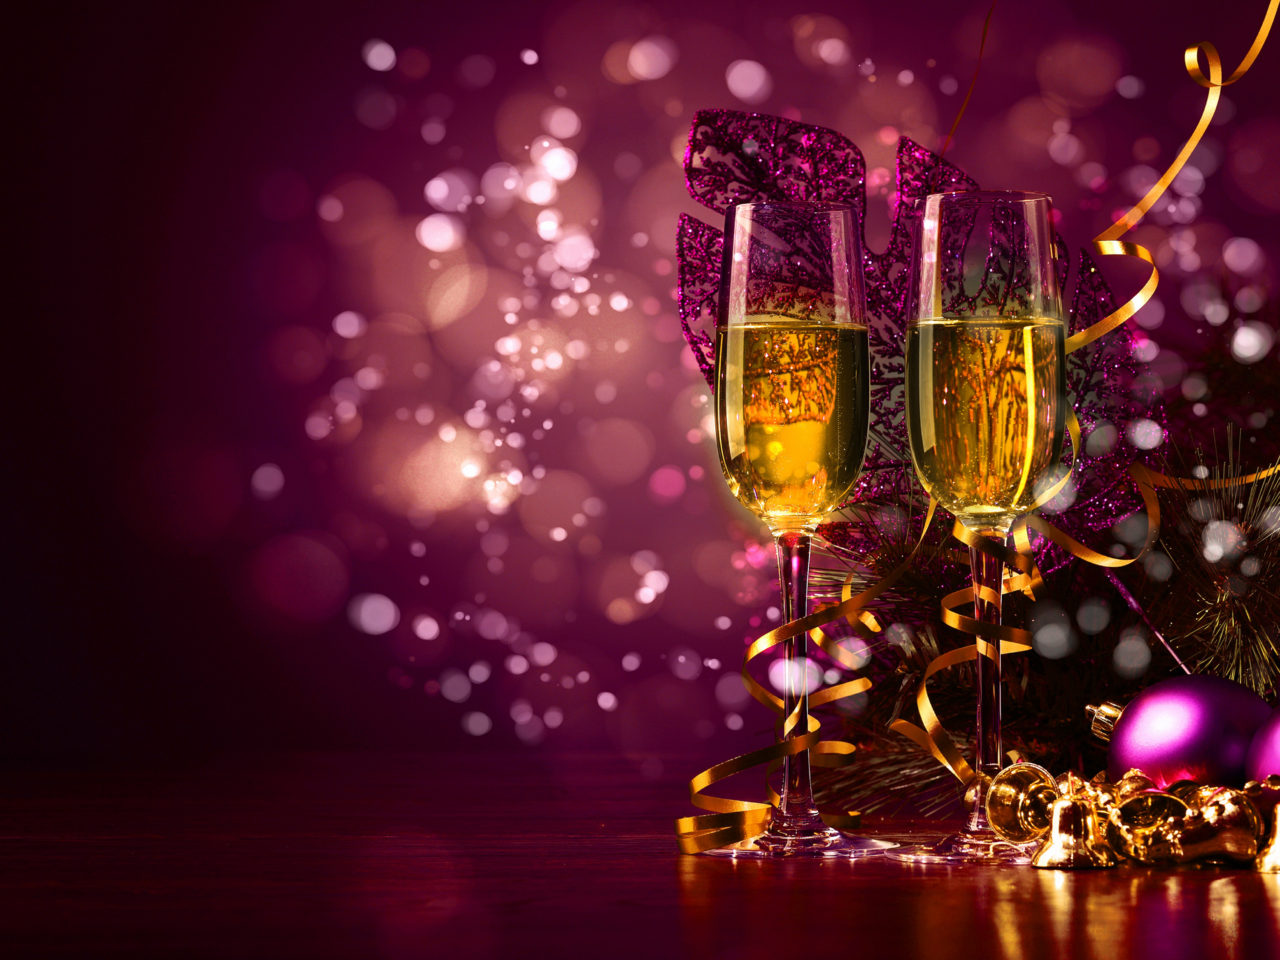 New Years Toast With Glasses Of Champagne Cute Purple